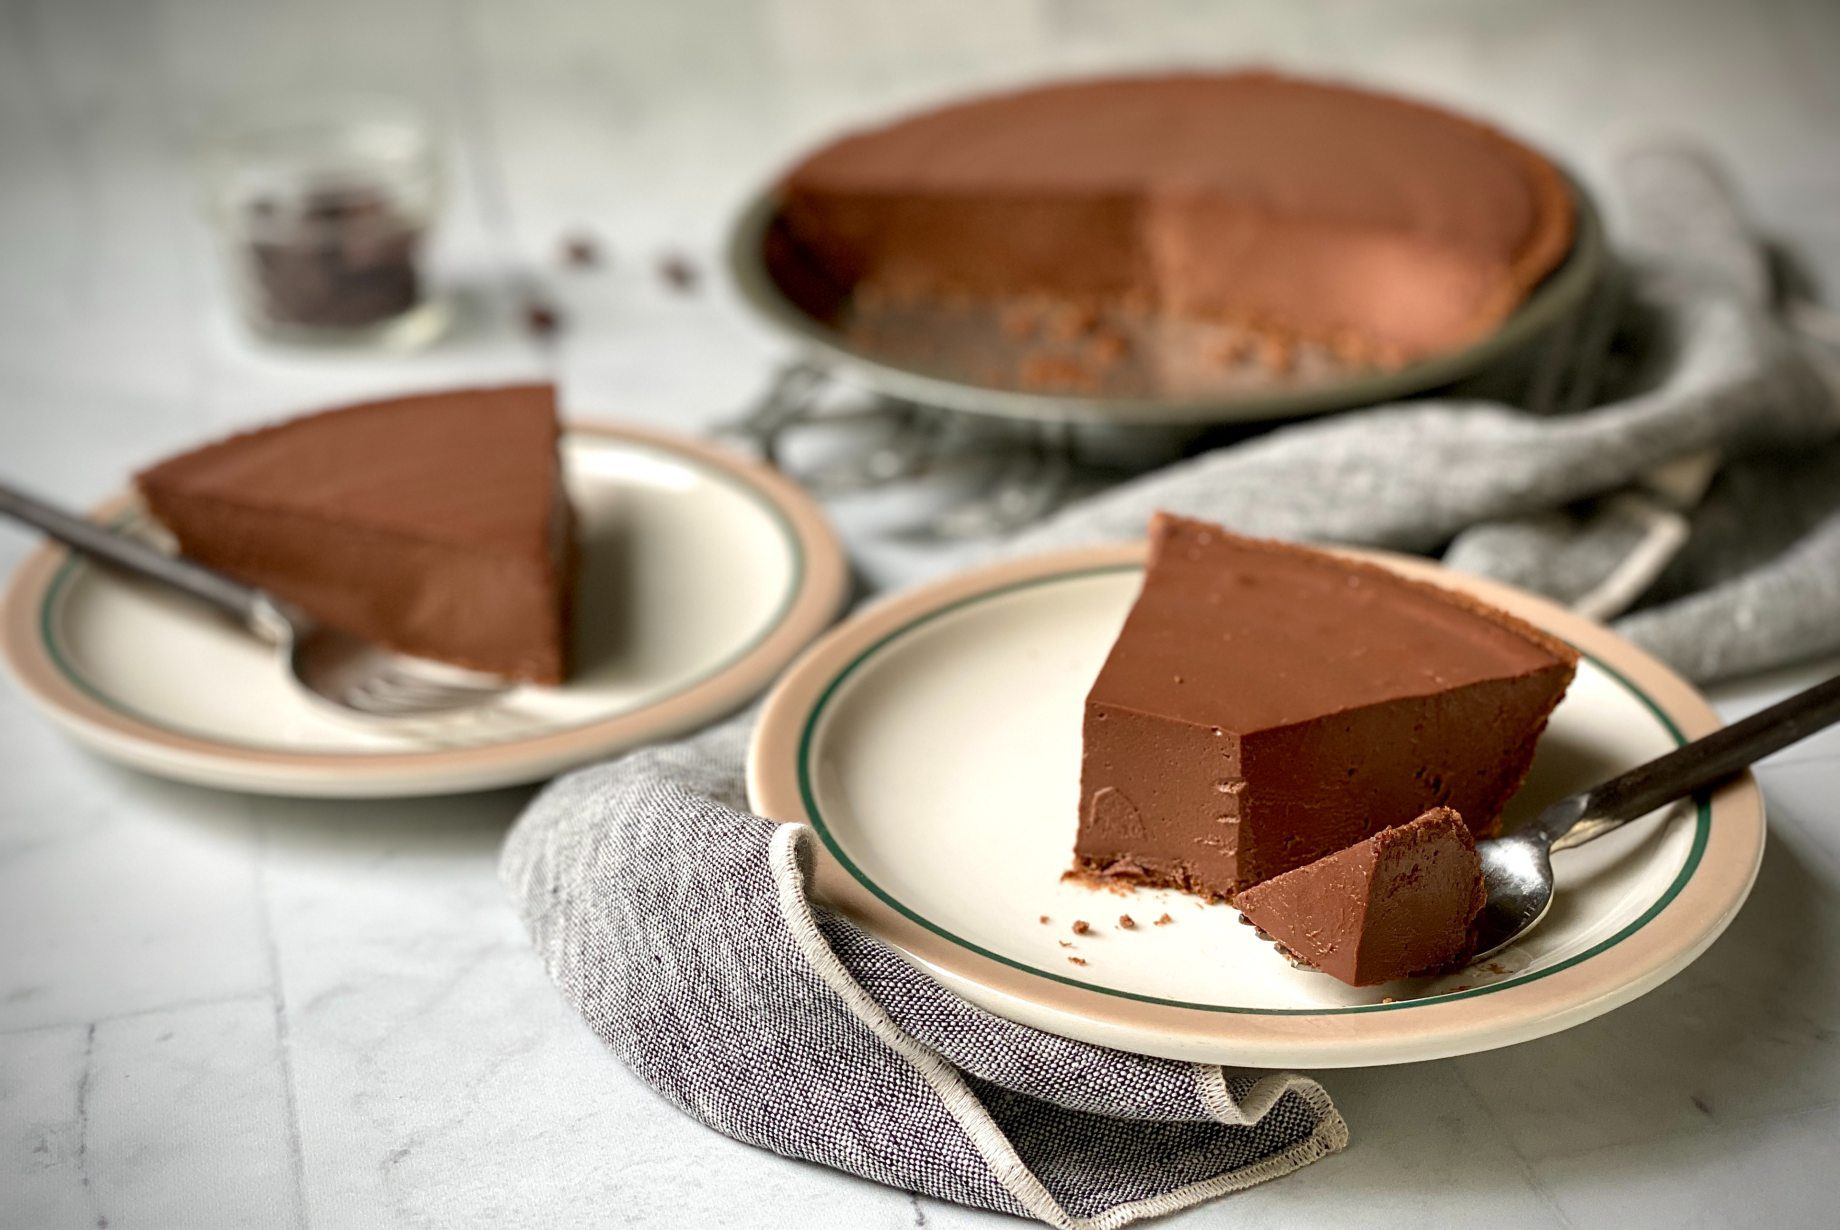 Dairy-free chocolate pie slice on a plate with a bite missing.